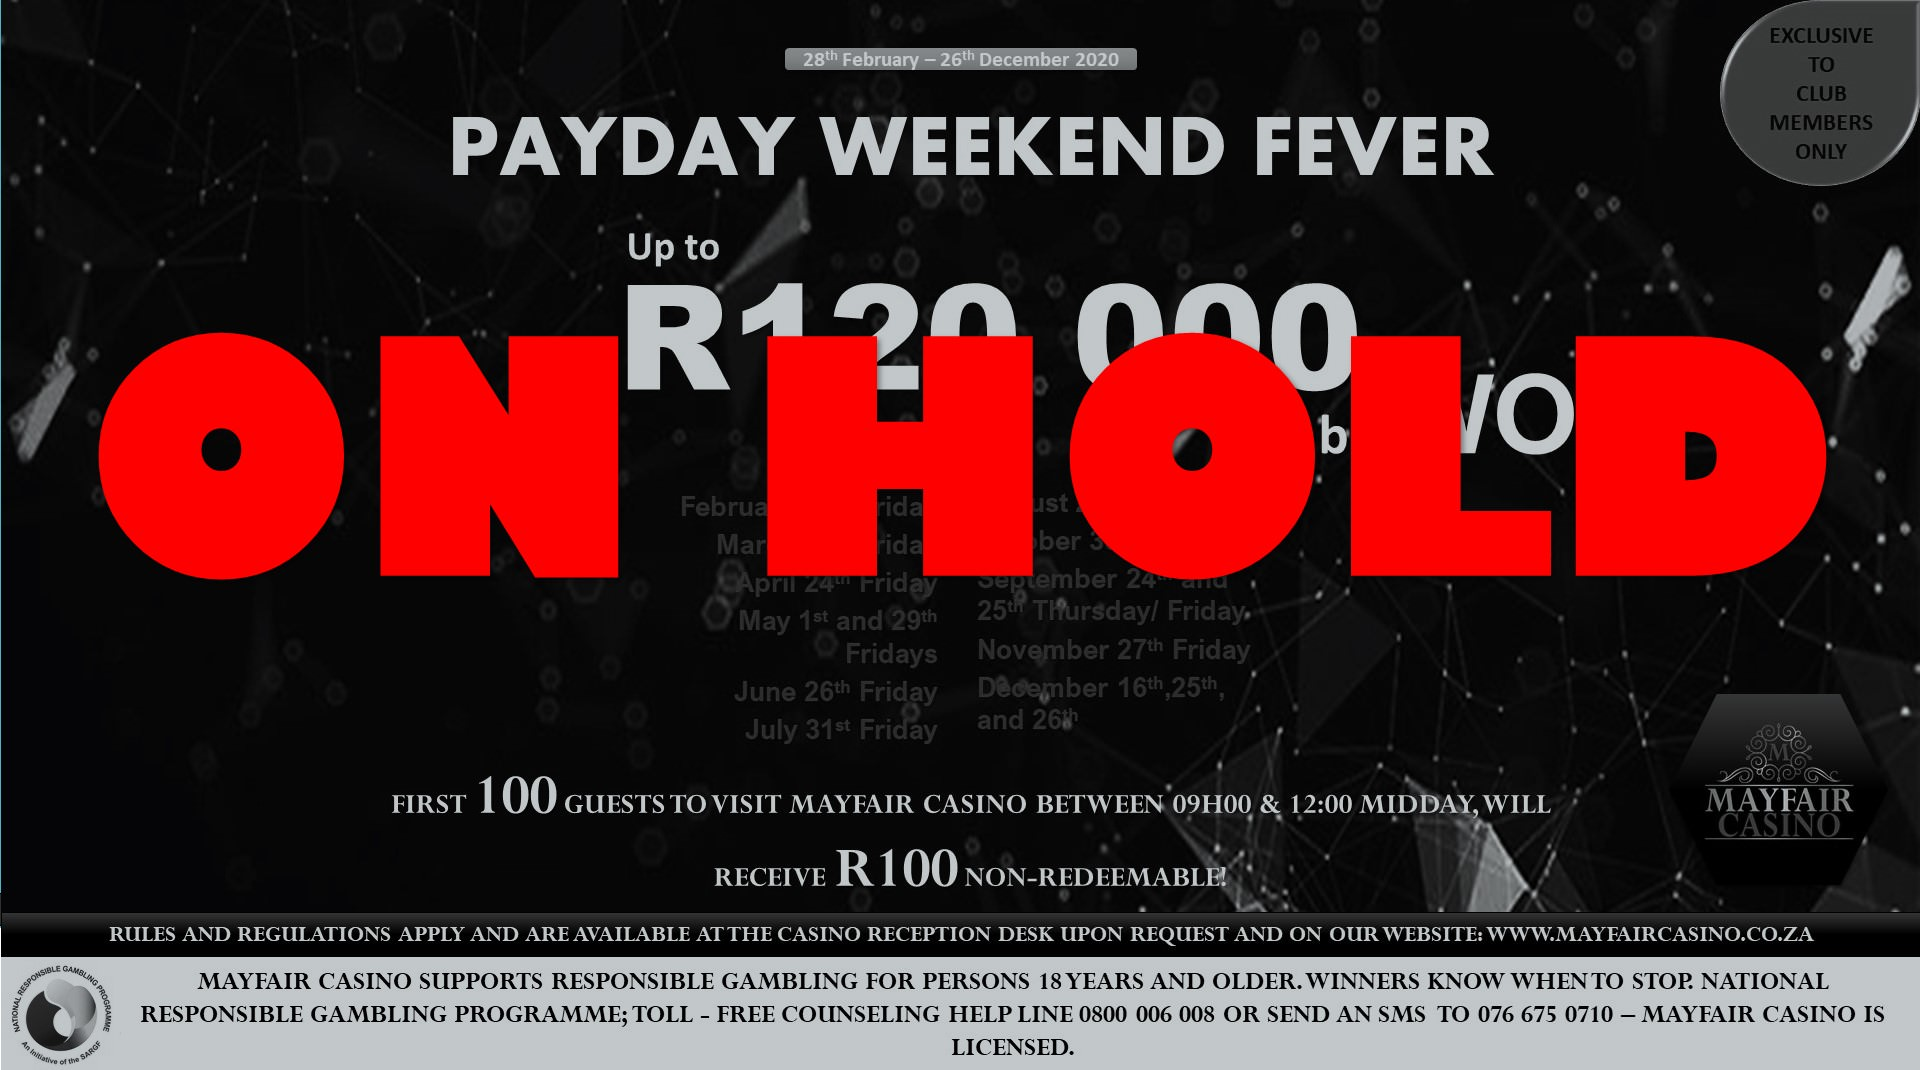 Payday Weekend Fever Promo